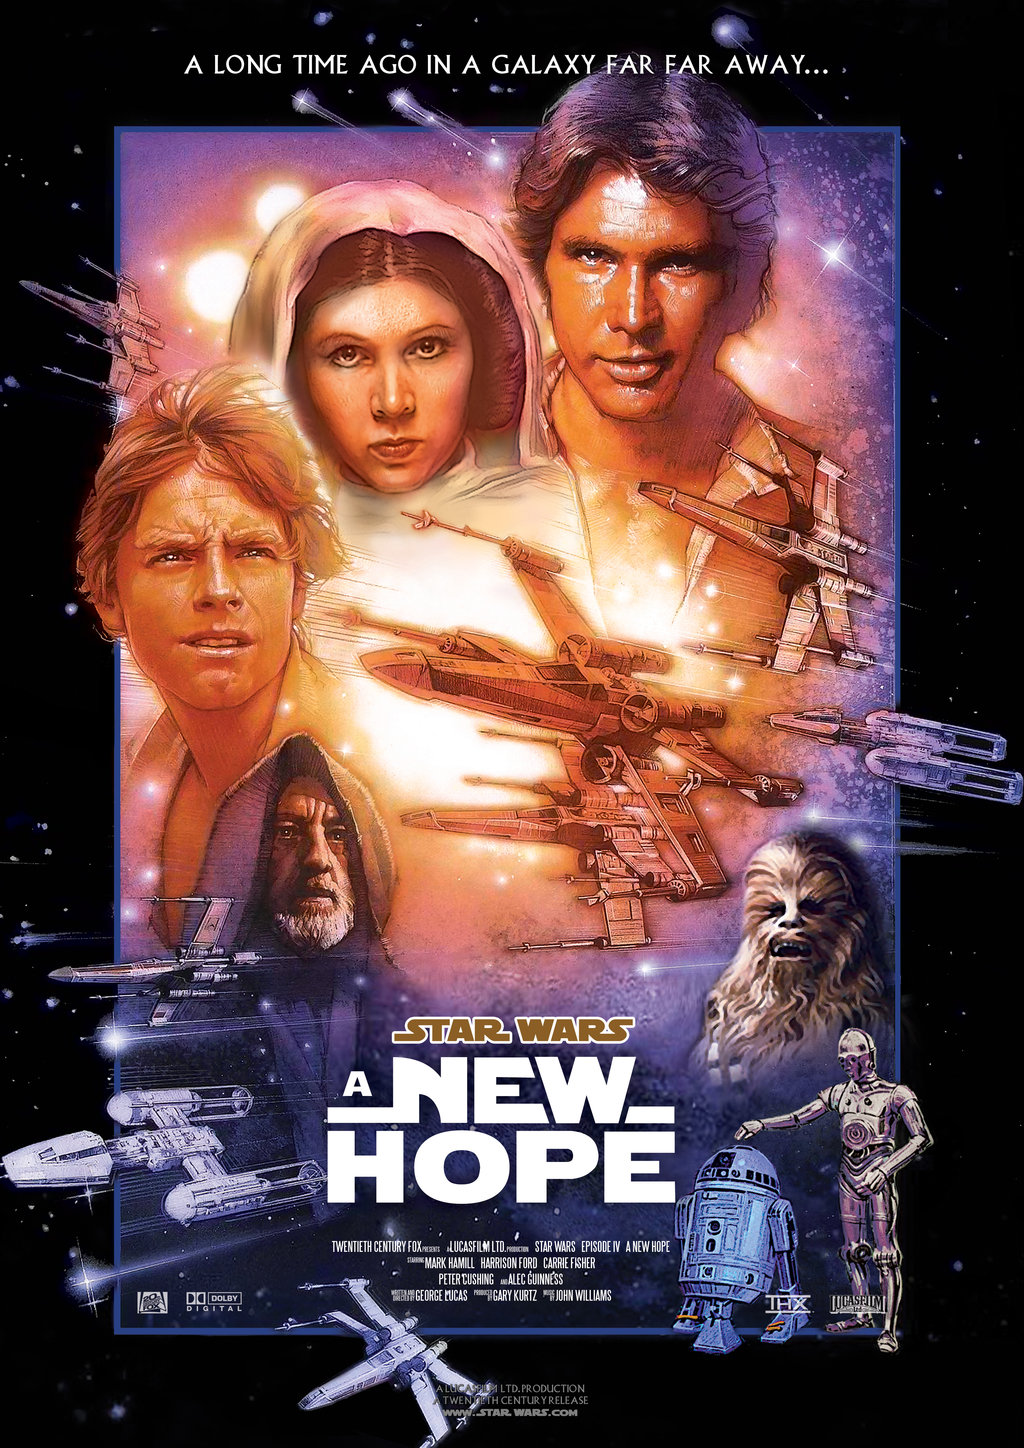 Star Wars Episode Iv A New Hope Spoilercast 39 Welkin One